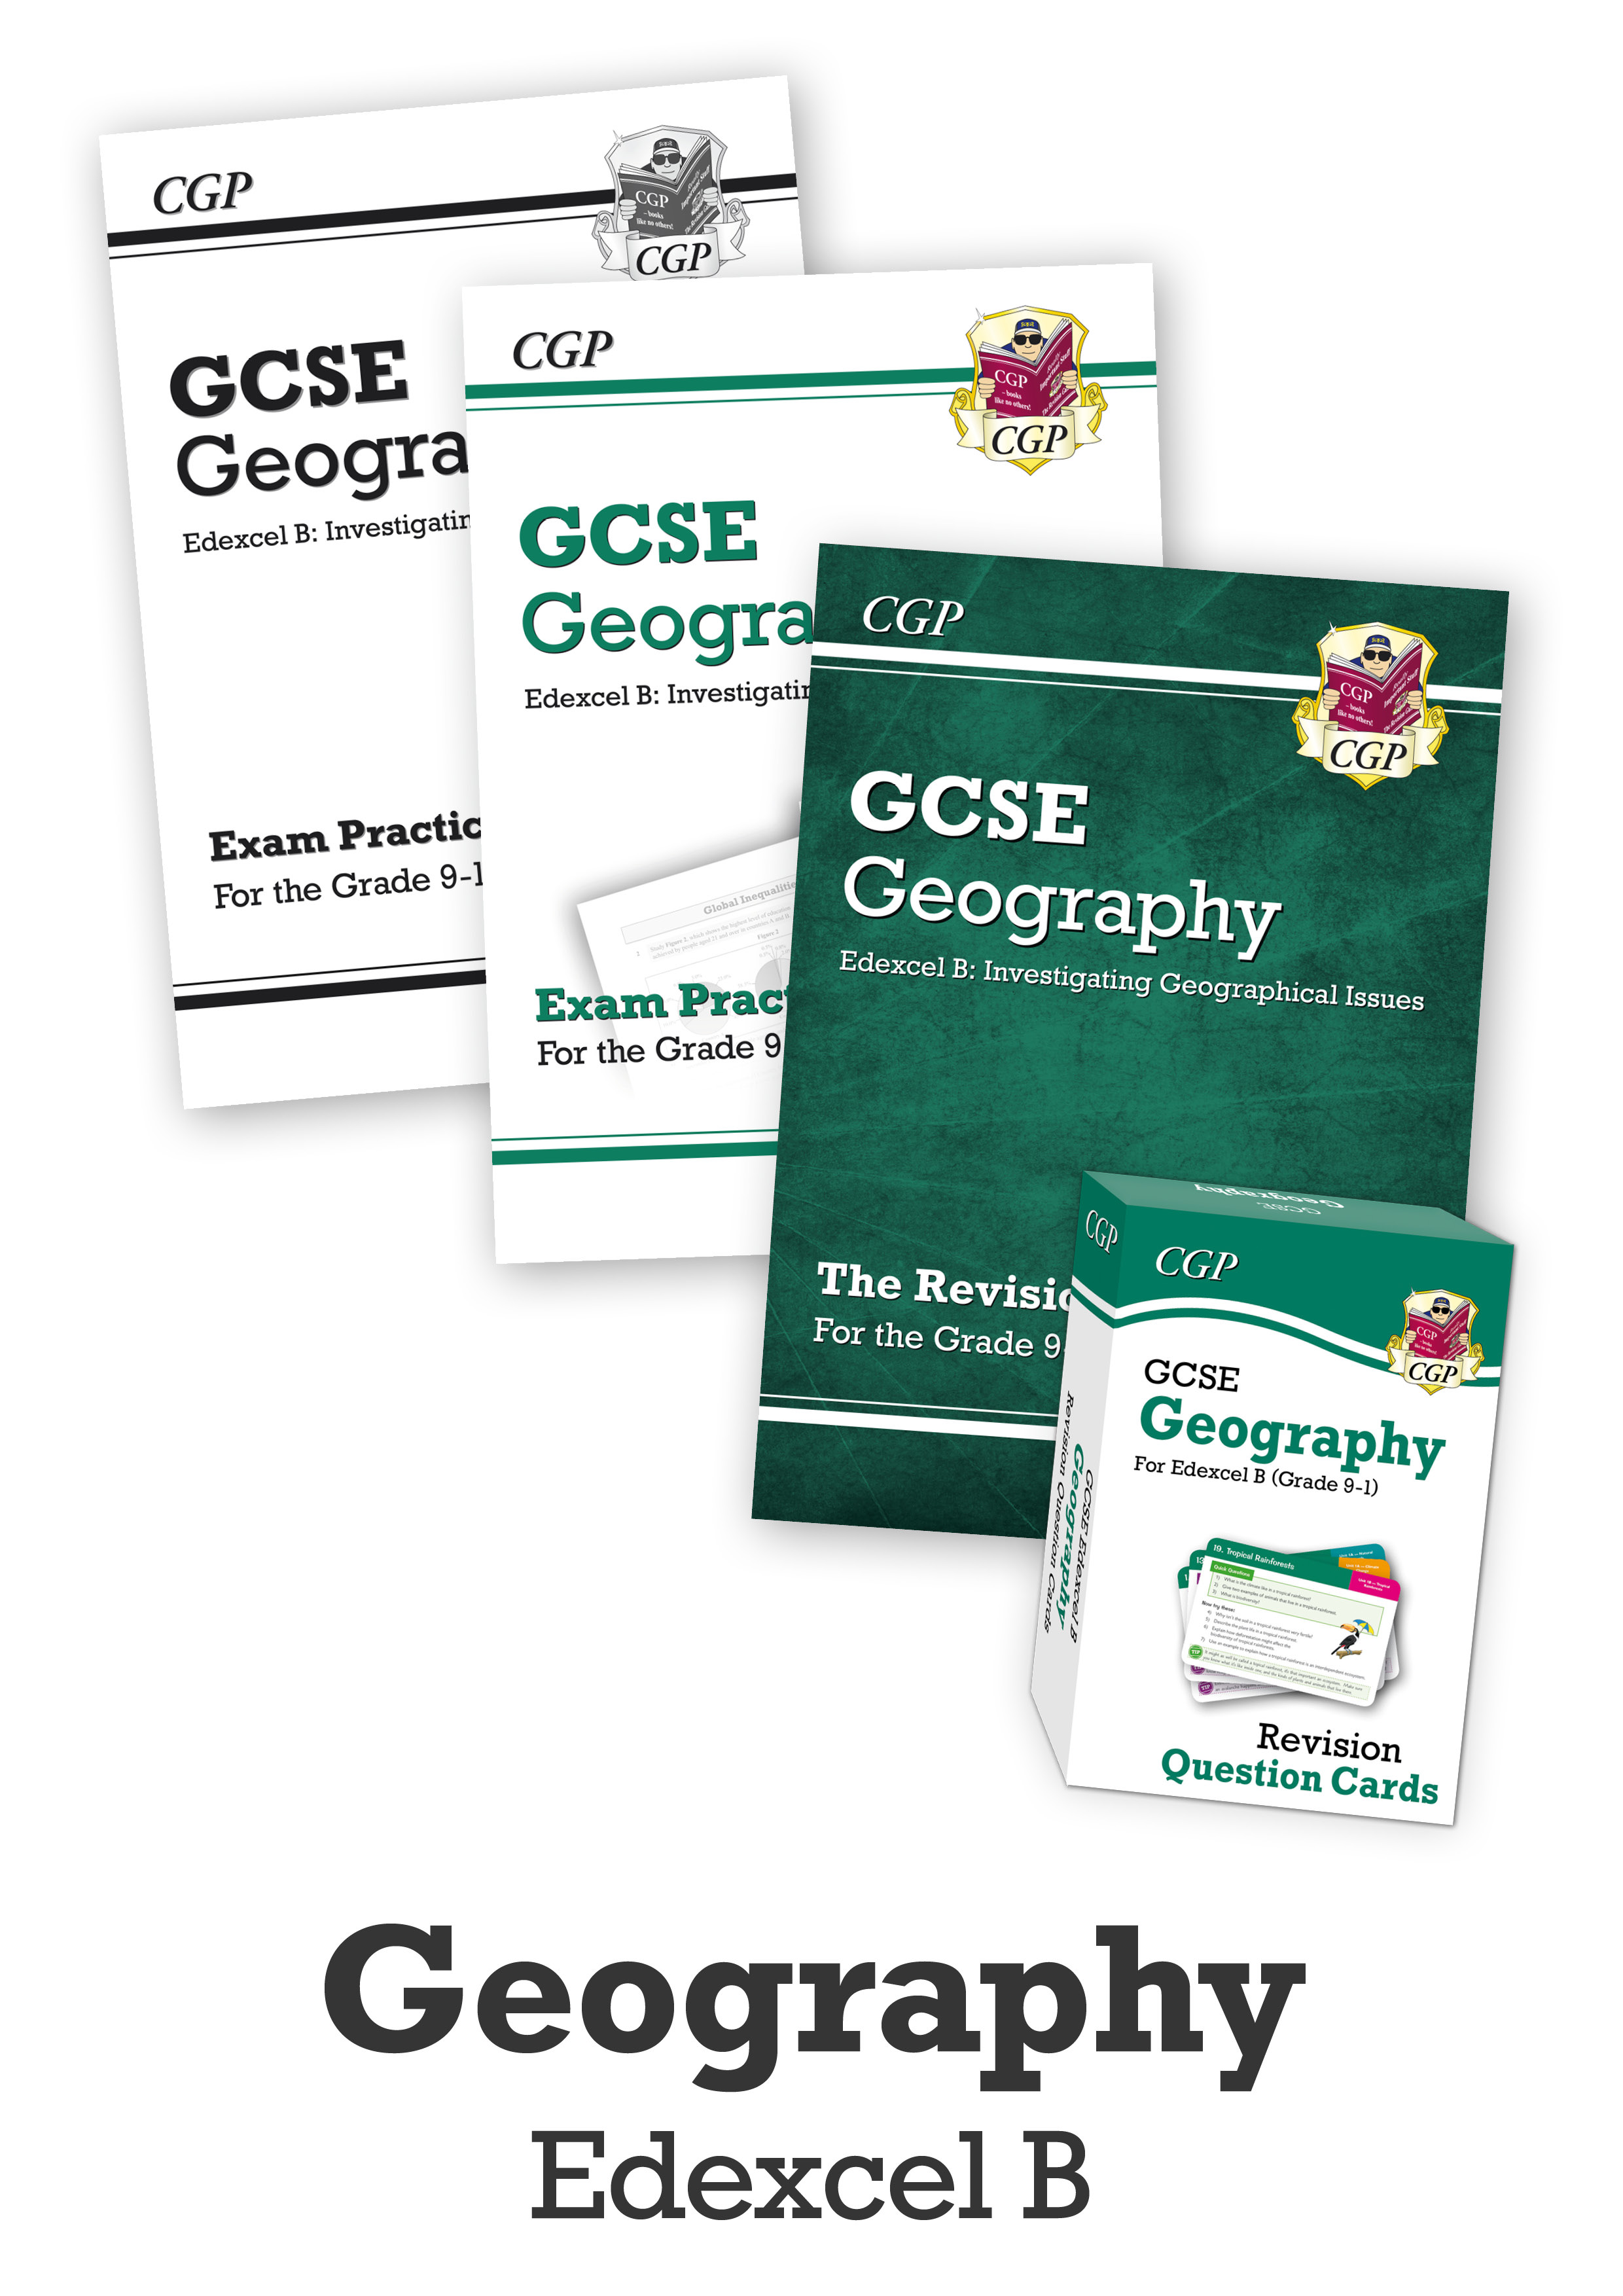 GECUB41 - GCSE Essentials Bundle: Edexcel B Geography